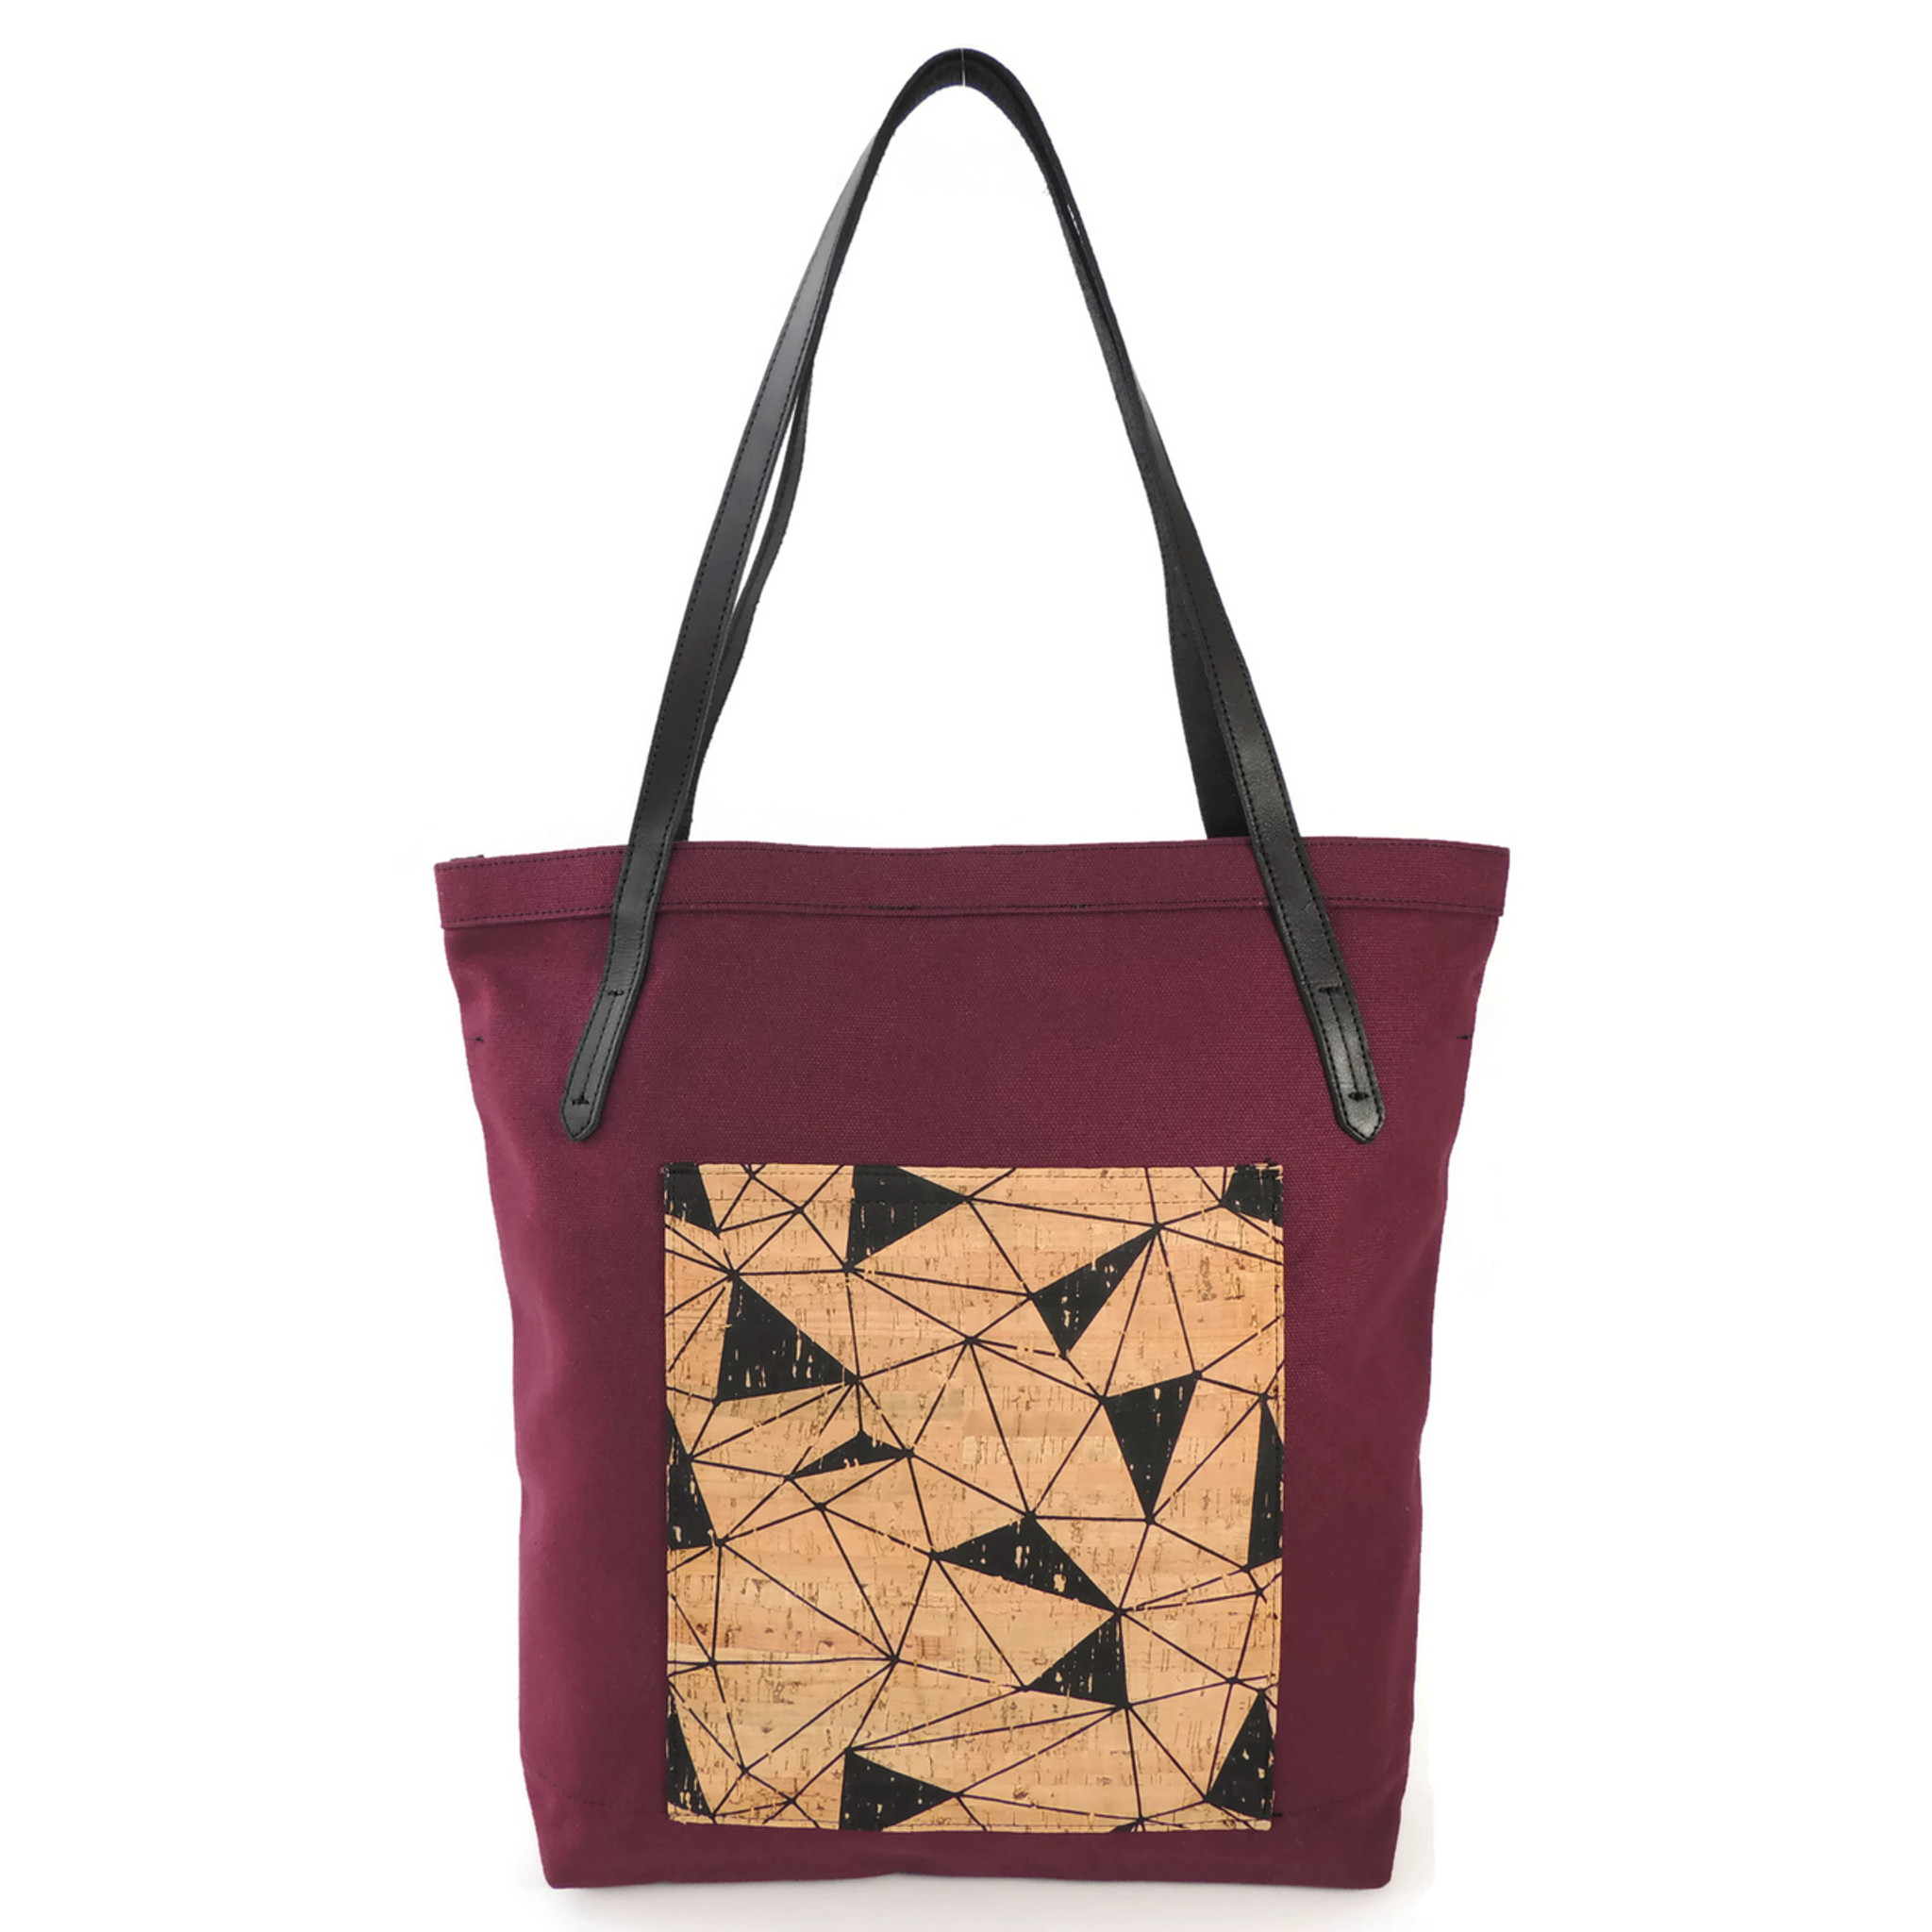 Pocket Tote in Maroon Canvas with Geo Cork